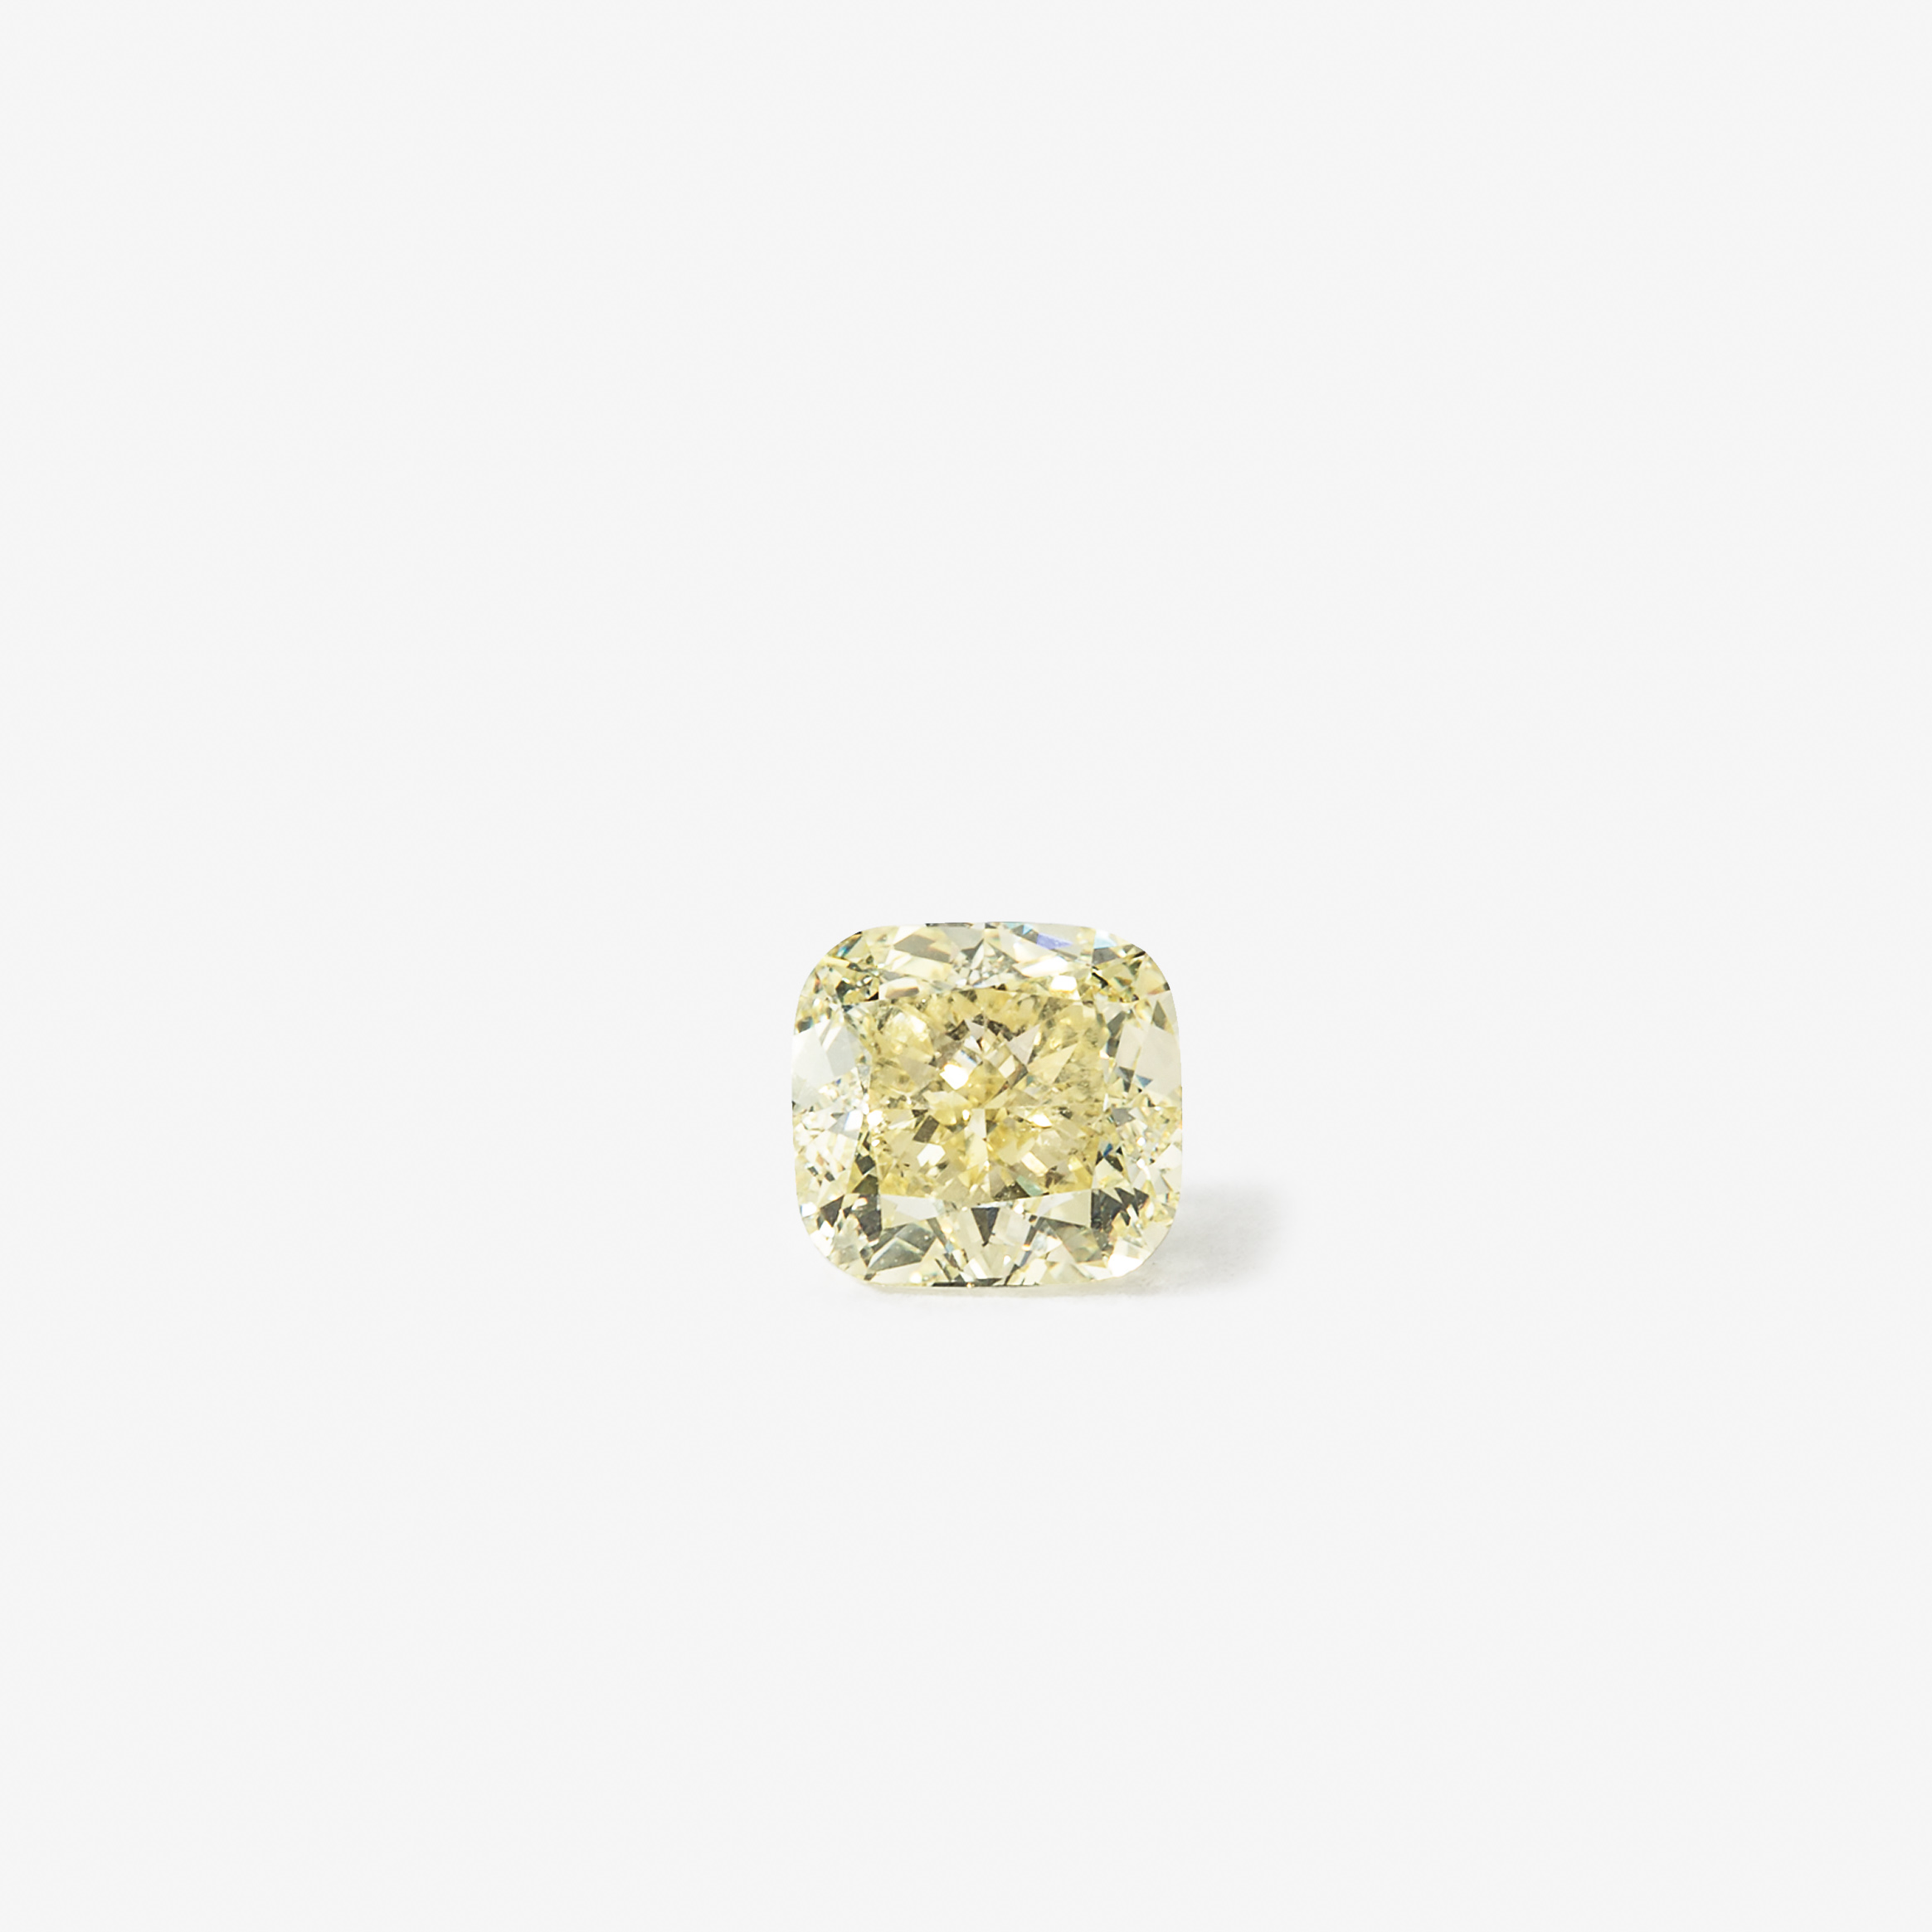 A cushion-cut diamond weighing 1.36 carat With GIA certificate: Fancy Light Yellow, Natural Even, IF, Numbered GIA 6202884809, 5 November 2015 Estimate: £8 - 10 500 (€ 9 000 - 12 000)